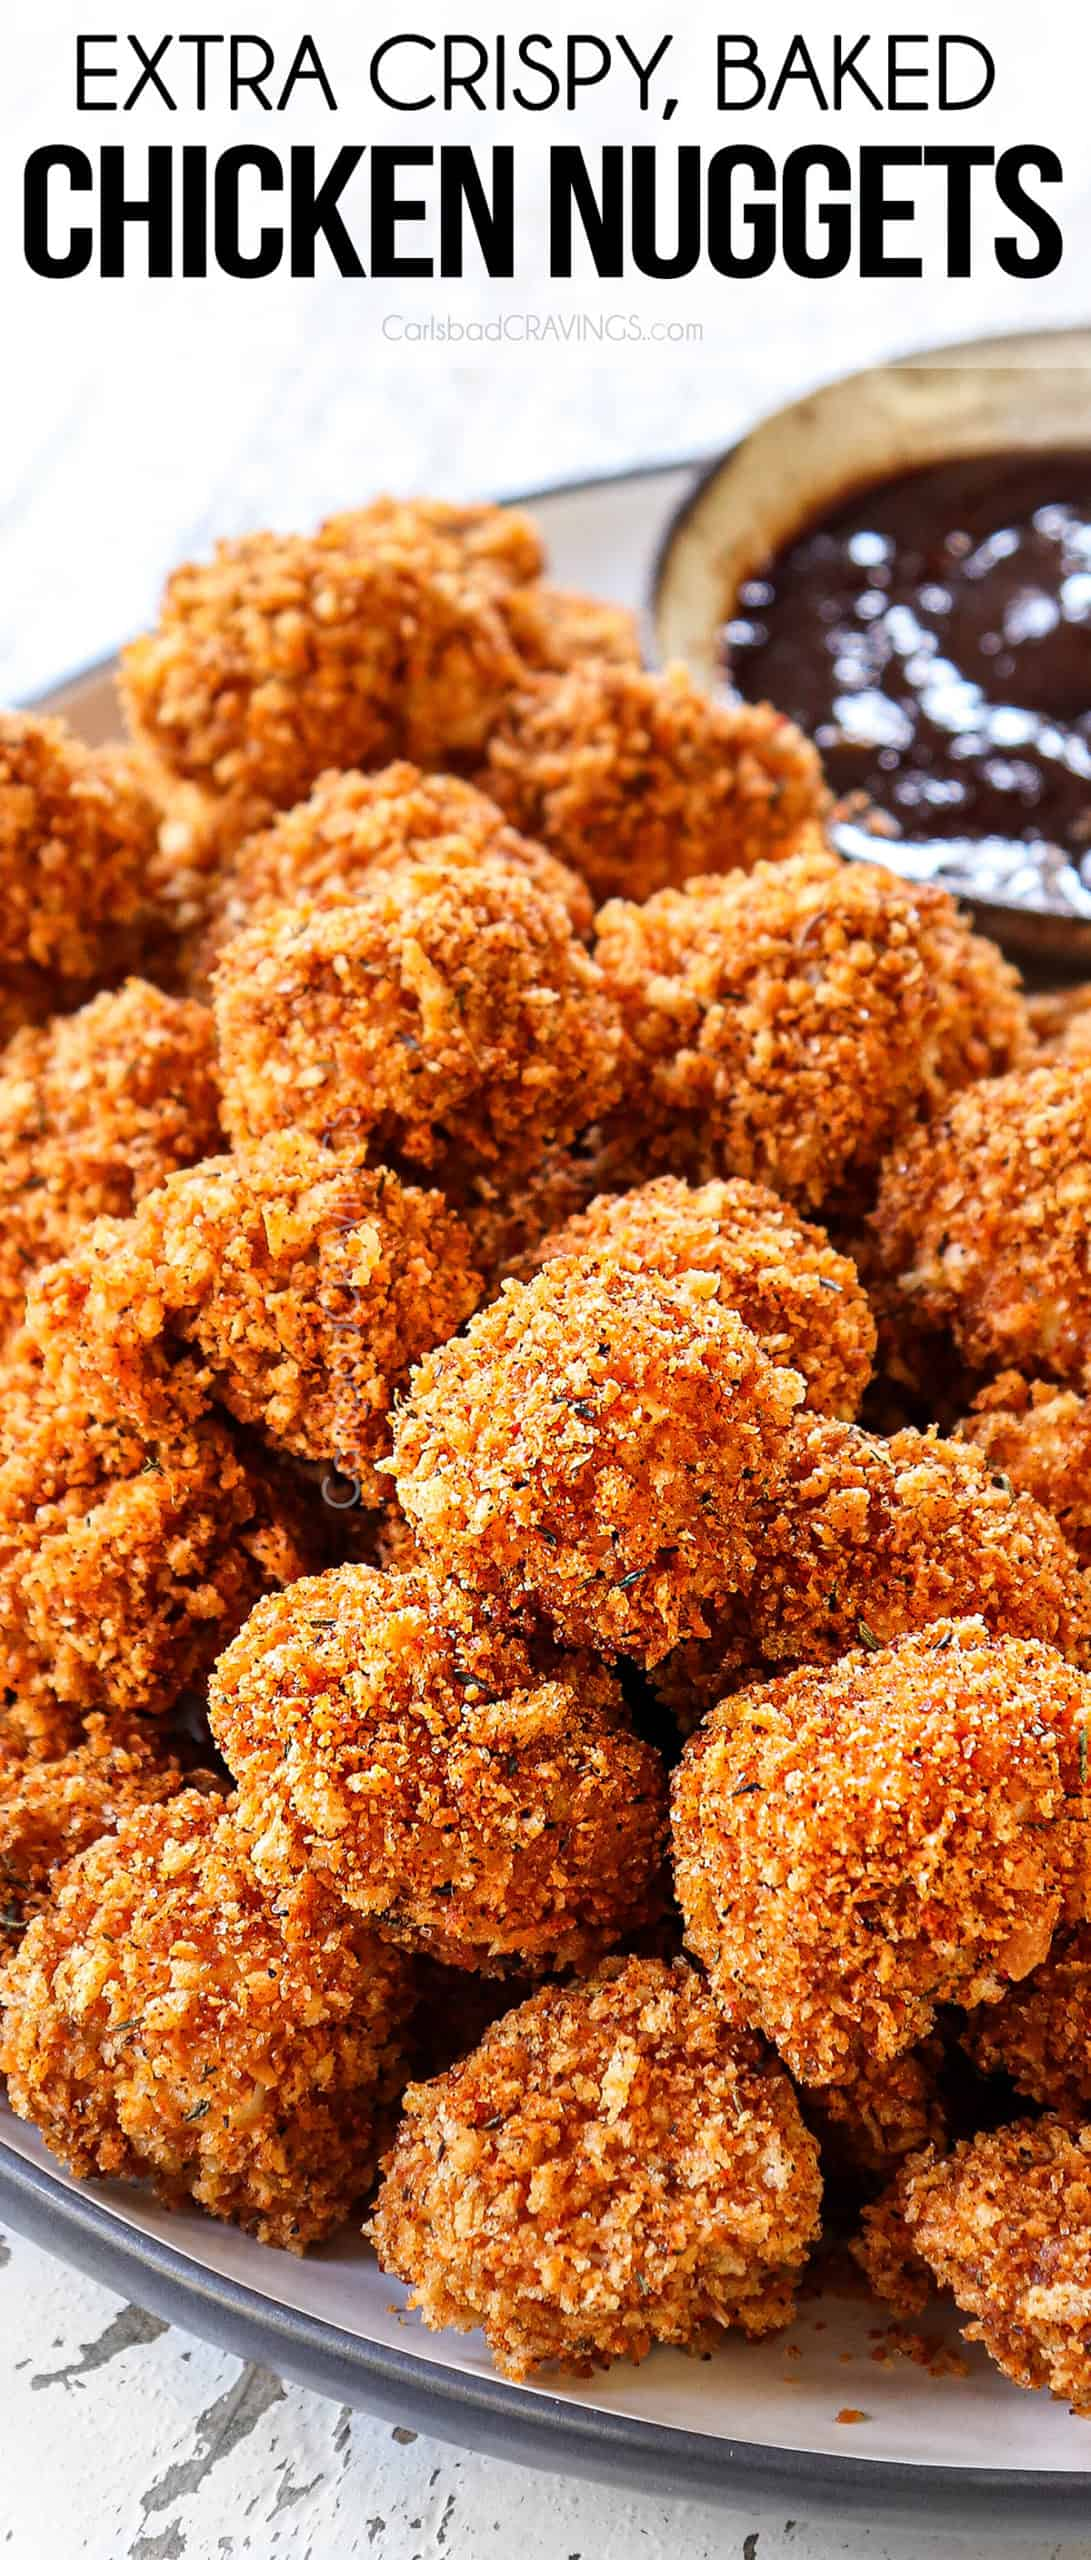 up close view of baked chicken nuggets stacked on a plate showing how crispy they are